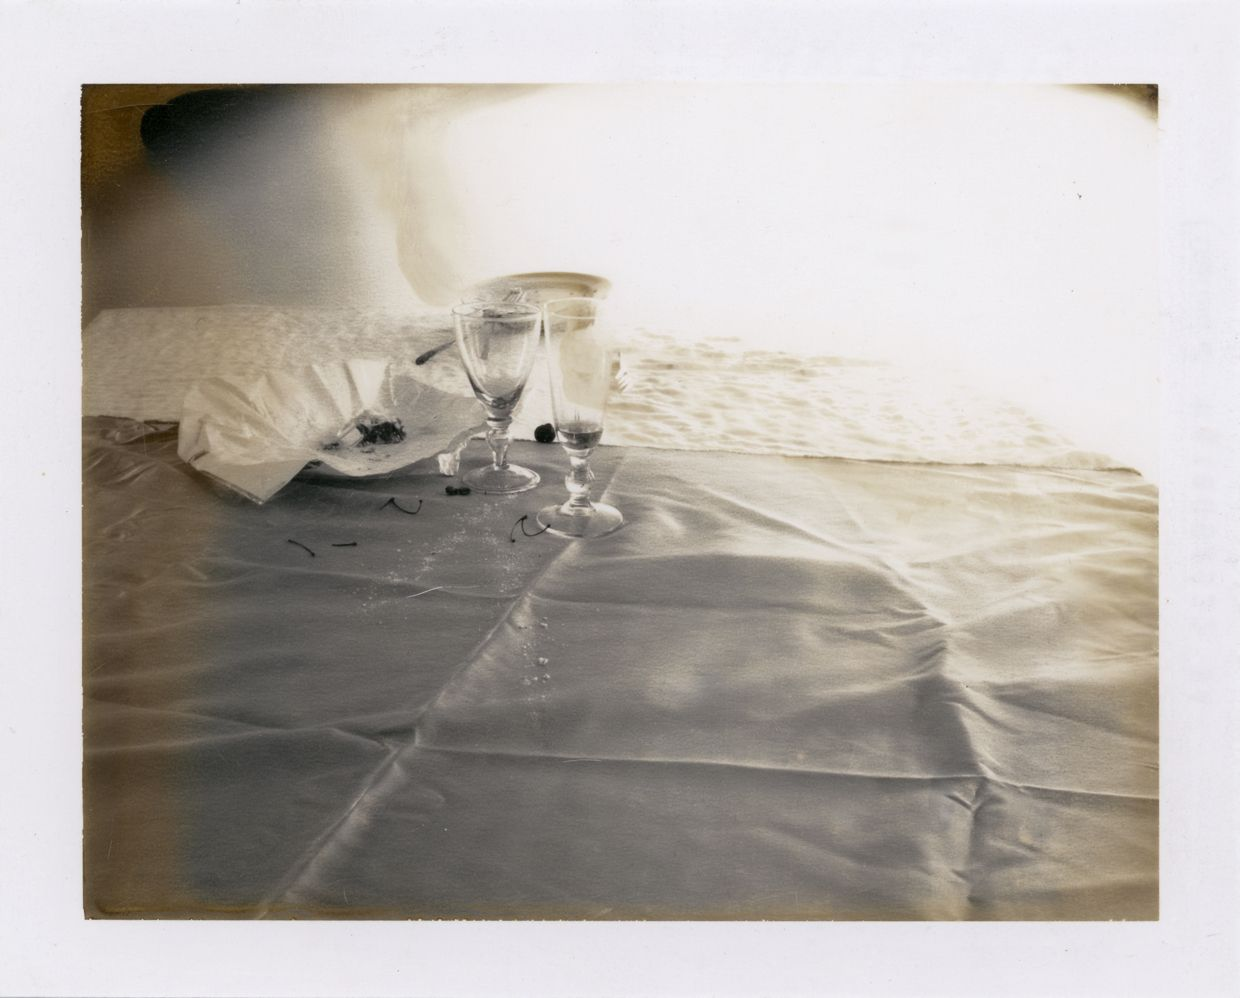 Laura Letinsky,  Untitled, from the series Time's Assignation, 2002,  Polaroid,  3 1/2h x 4 1/2w in, Unique, Photograpy